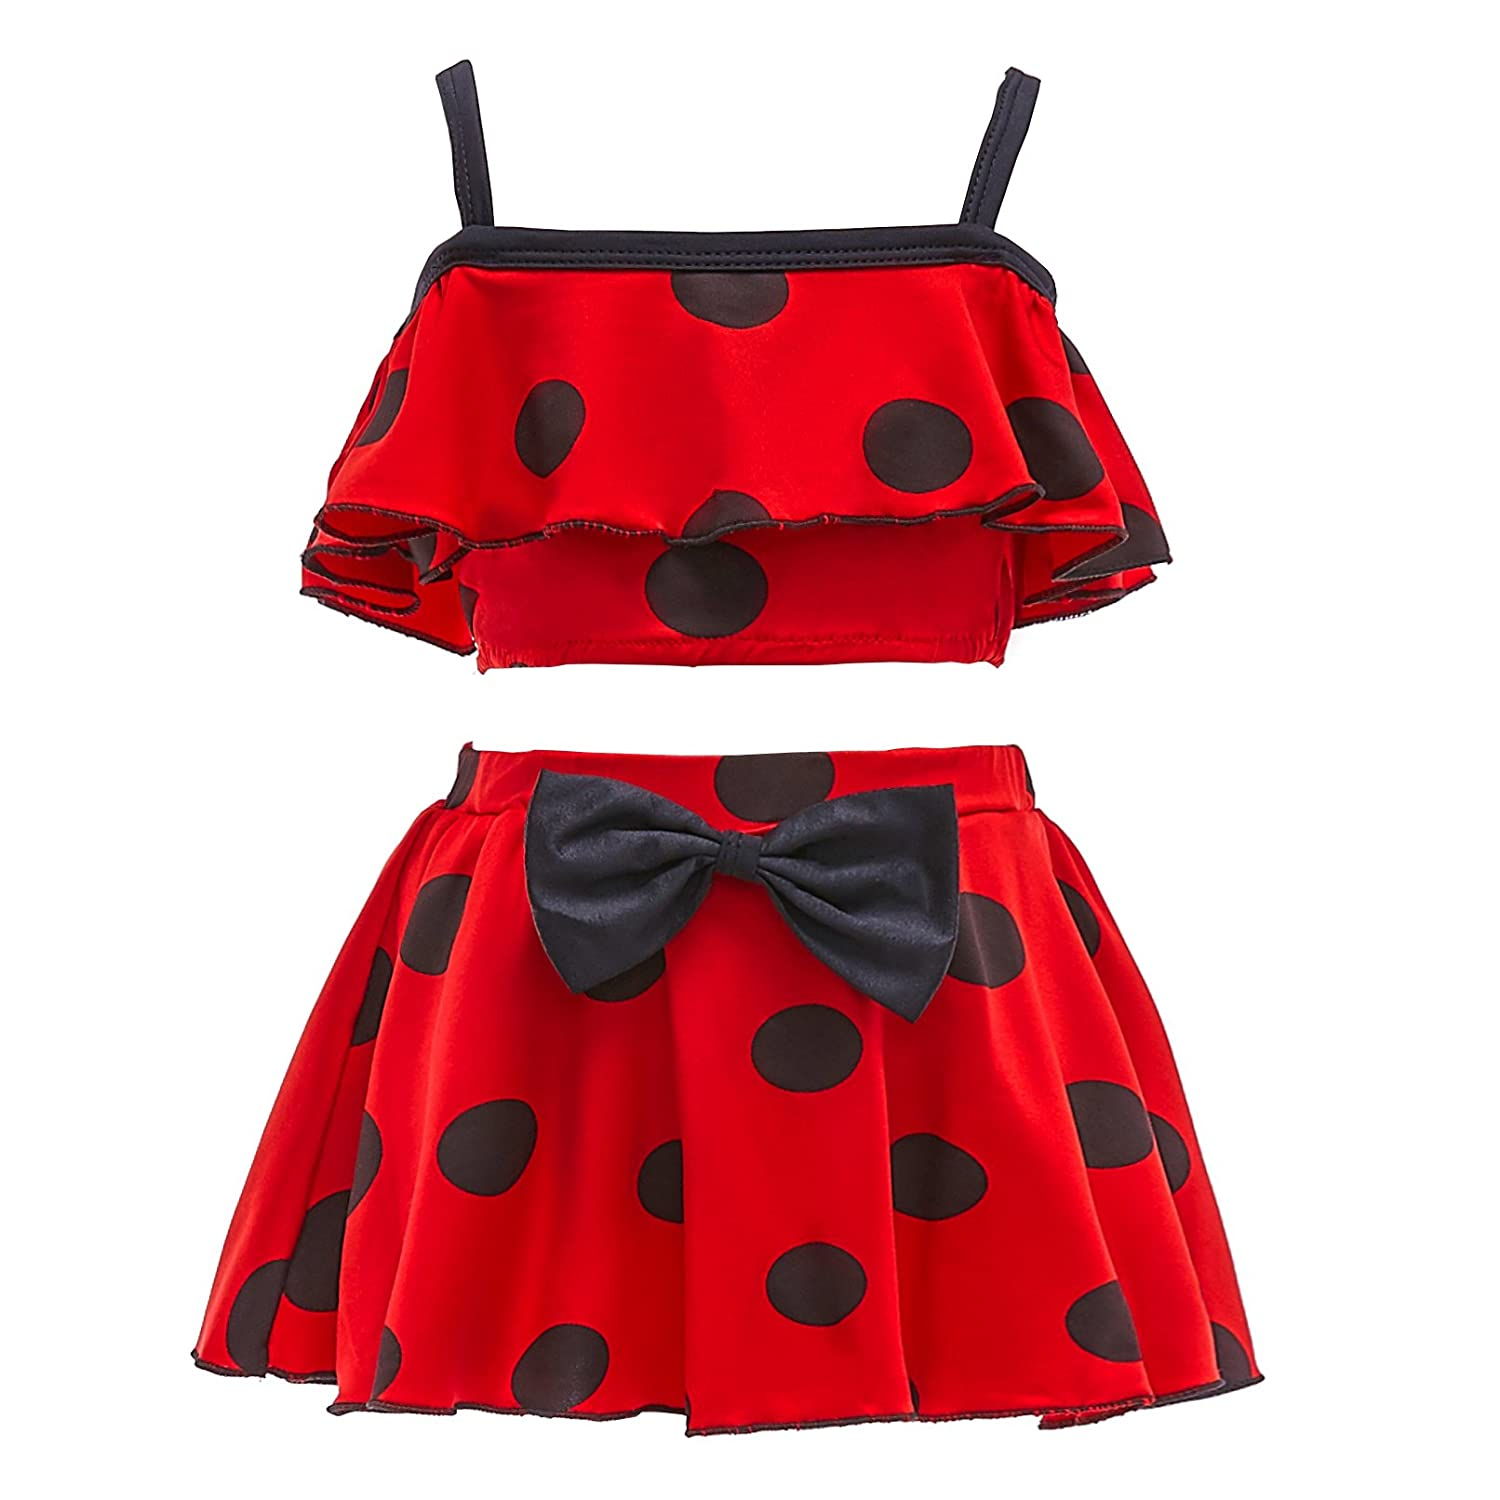 Dressy Daisy Girls Miraculous Ladybug Bathing Suit Tankini Swimsuit Swimwear SW056